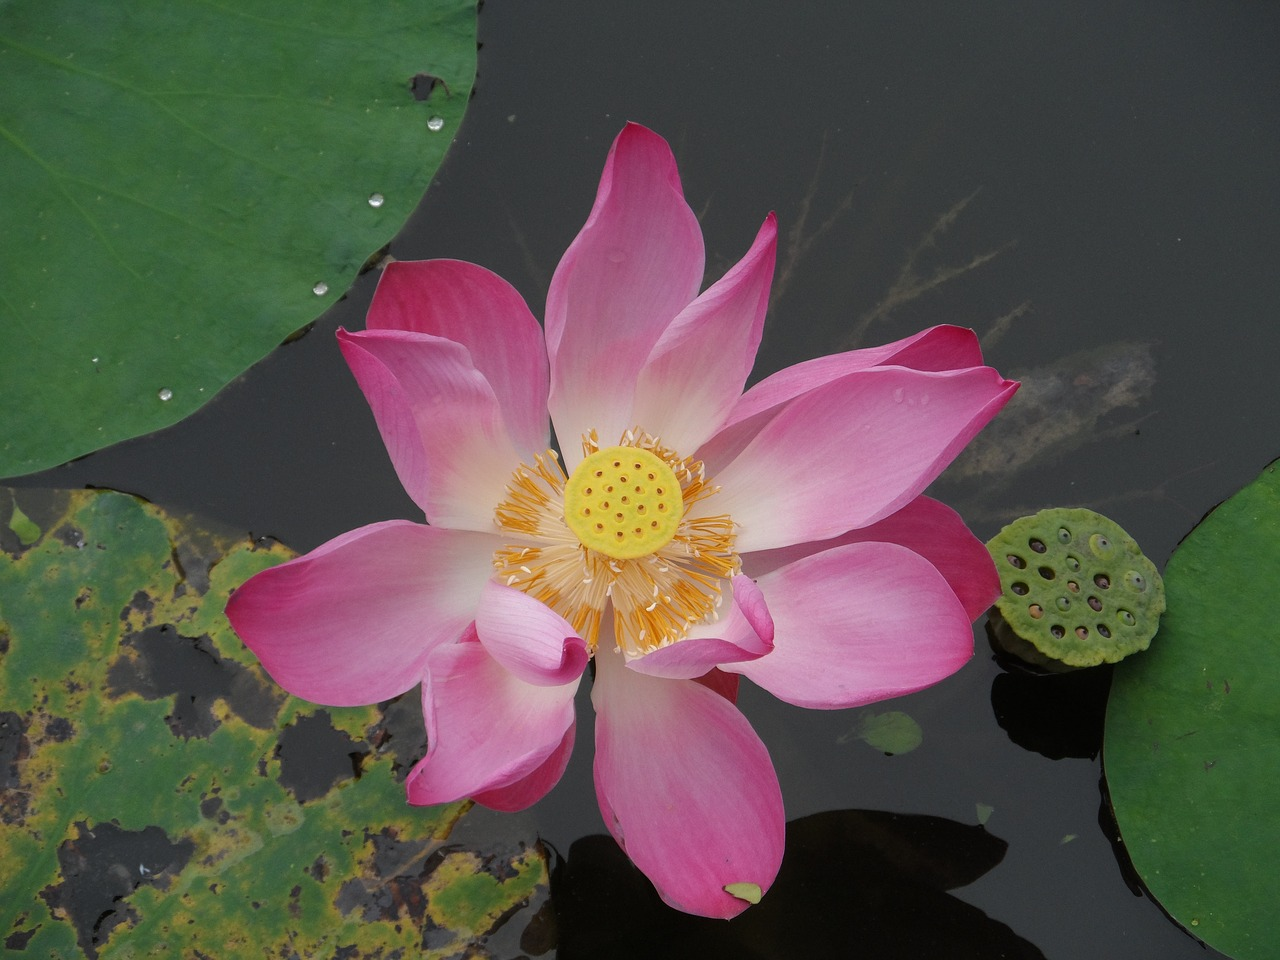 Lotus Blossomfloweraquatic Plantwater Lilythailand Free Photo